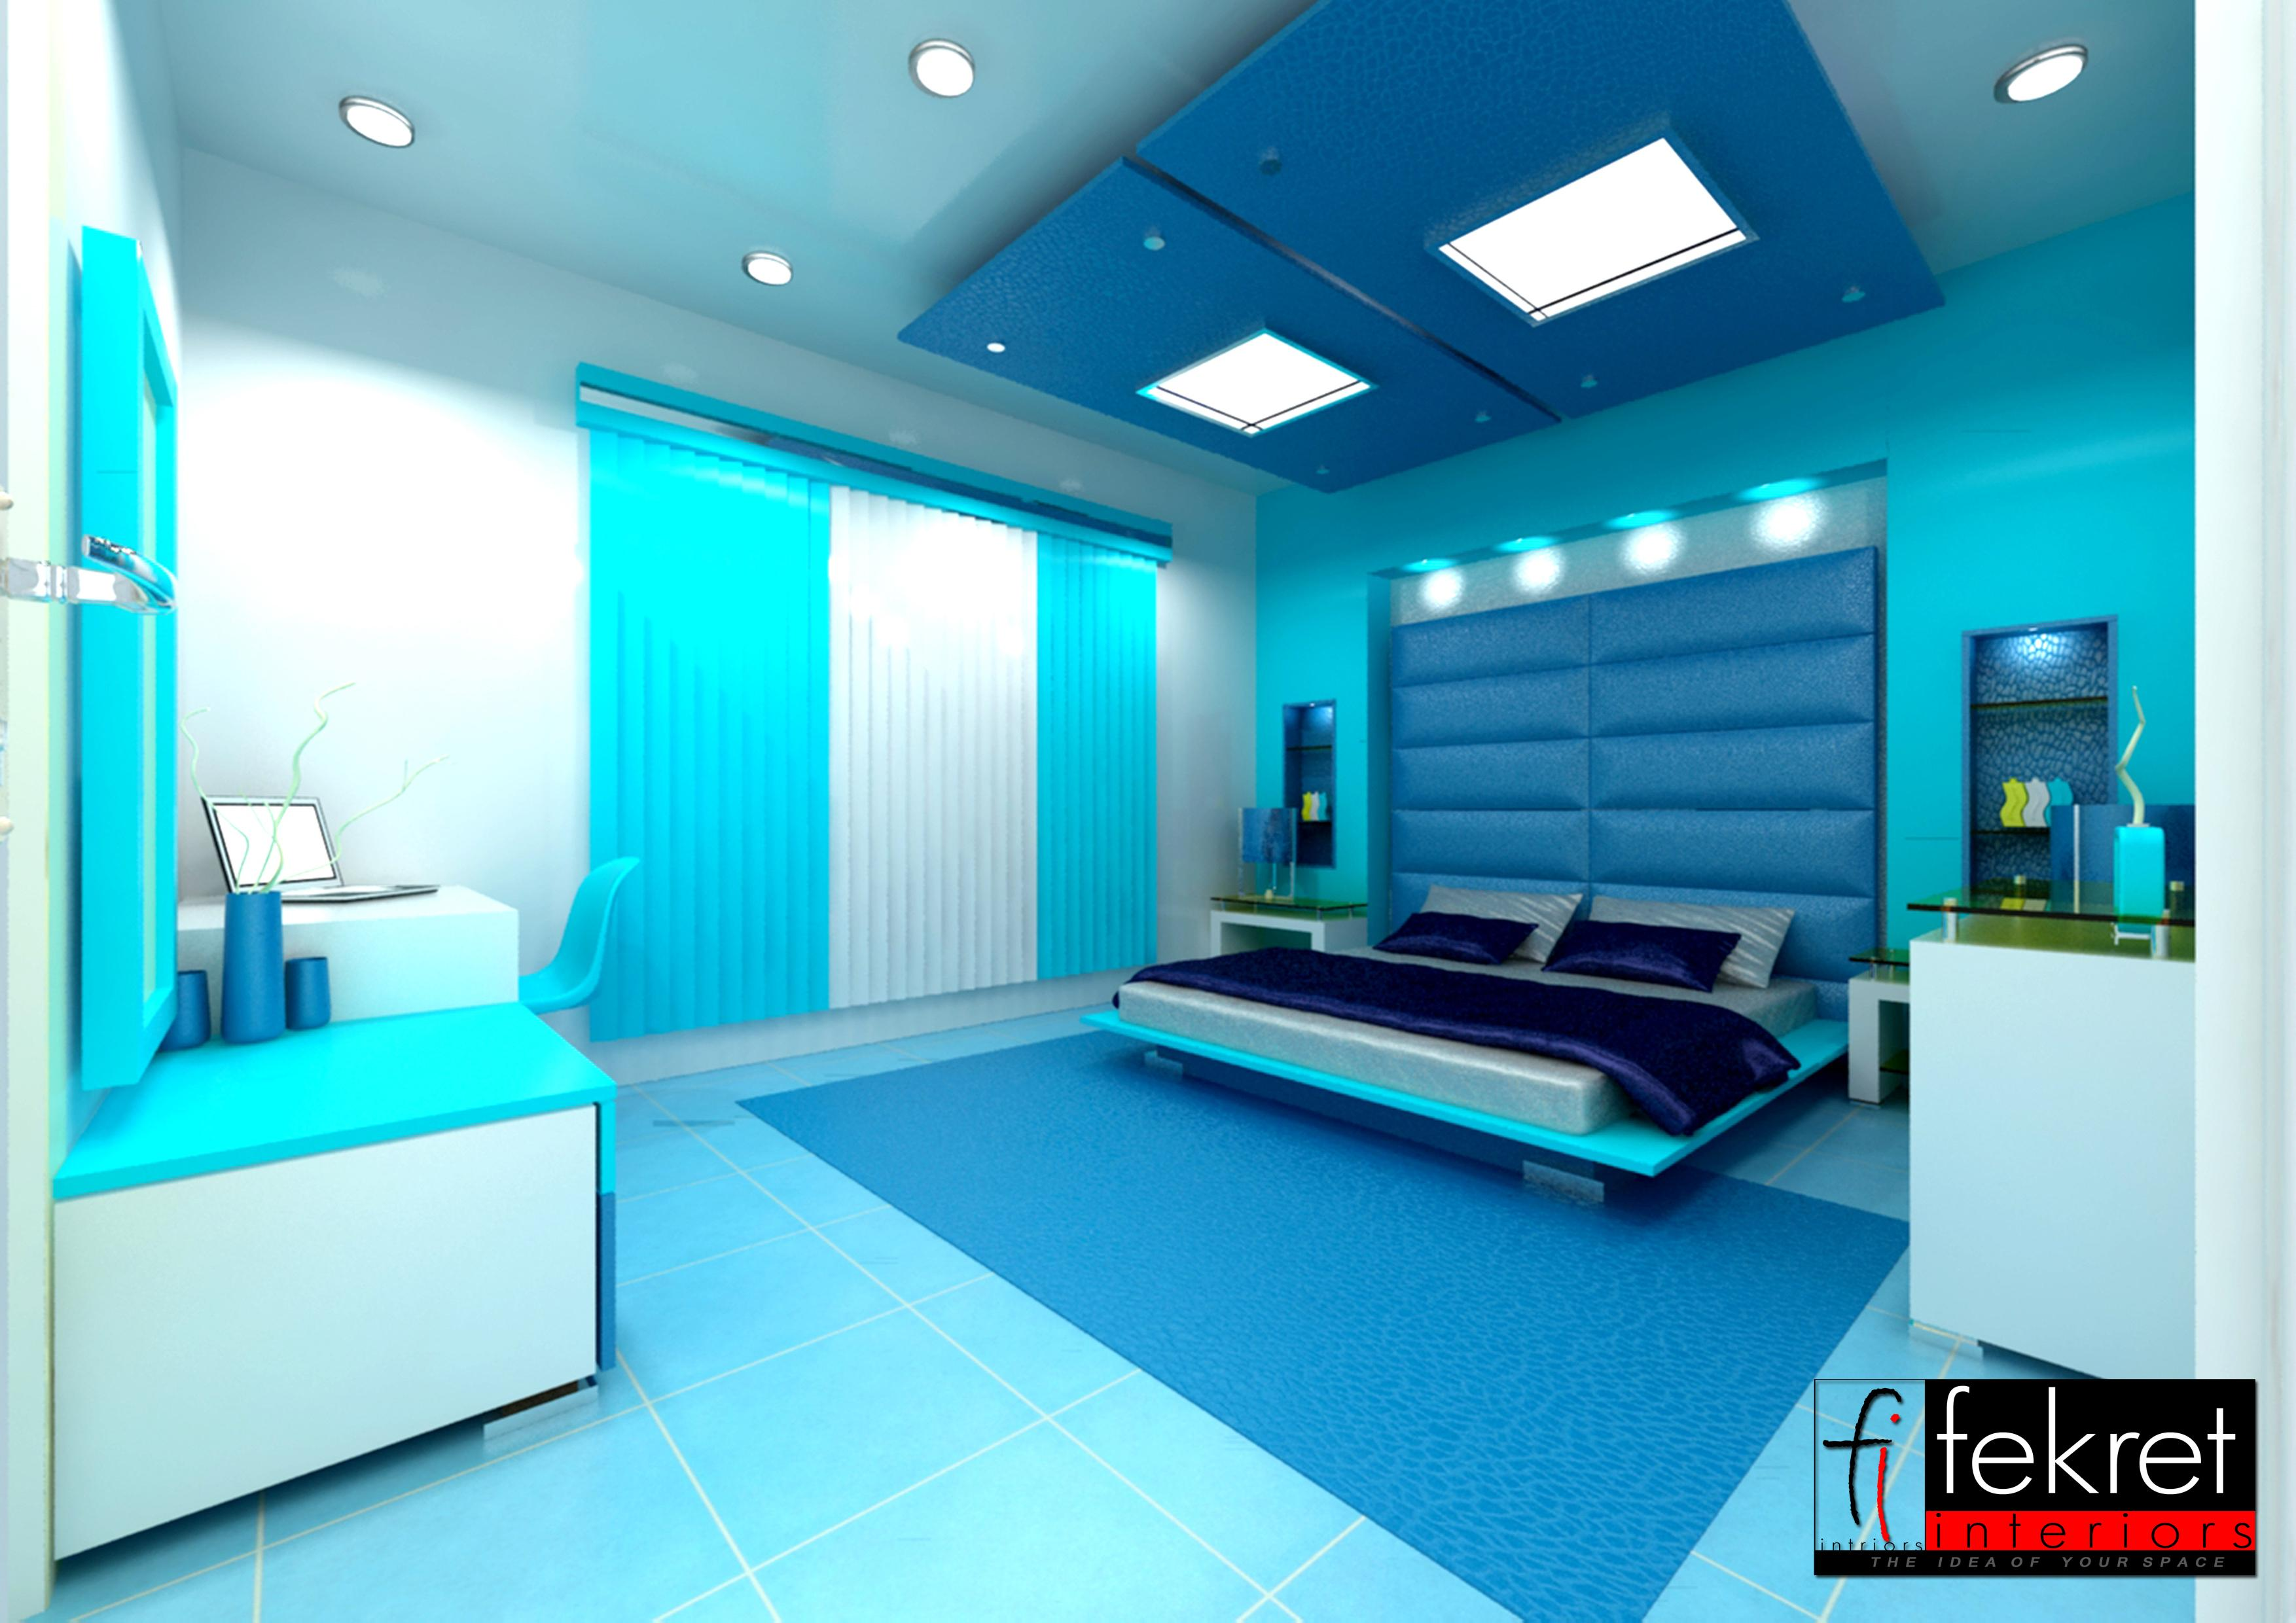 Light blue bedroom paint colors - Making Your Home Ethereal With Light Blue Wall Color Warisan Blue Bedroom Colors Blue Bedroom